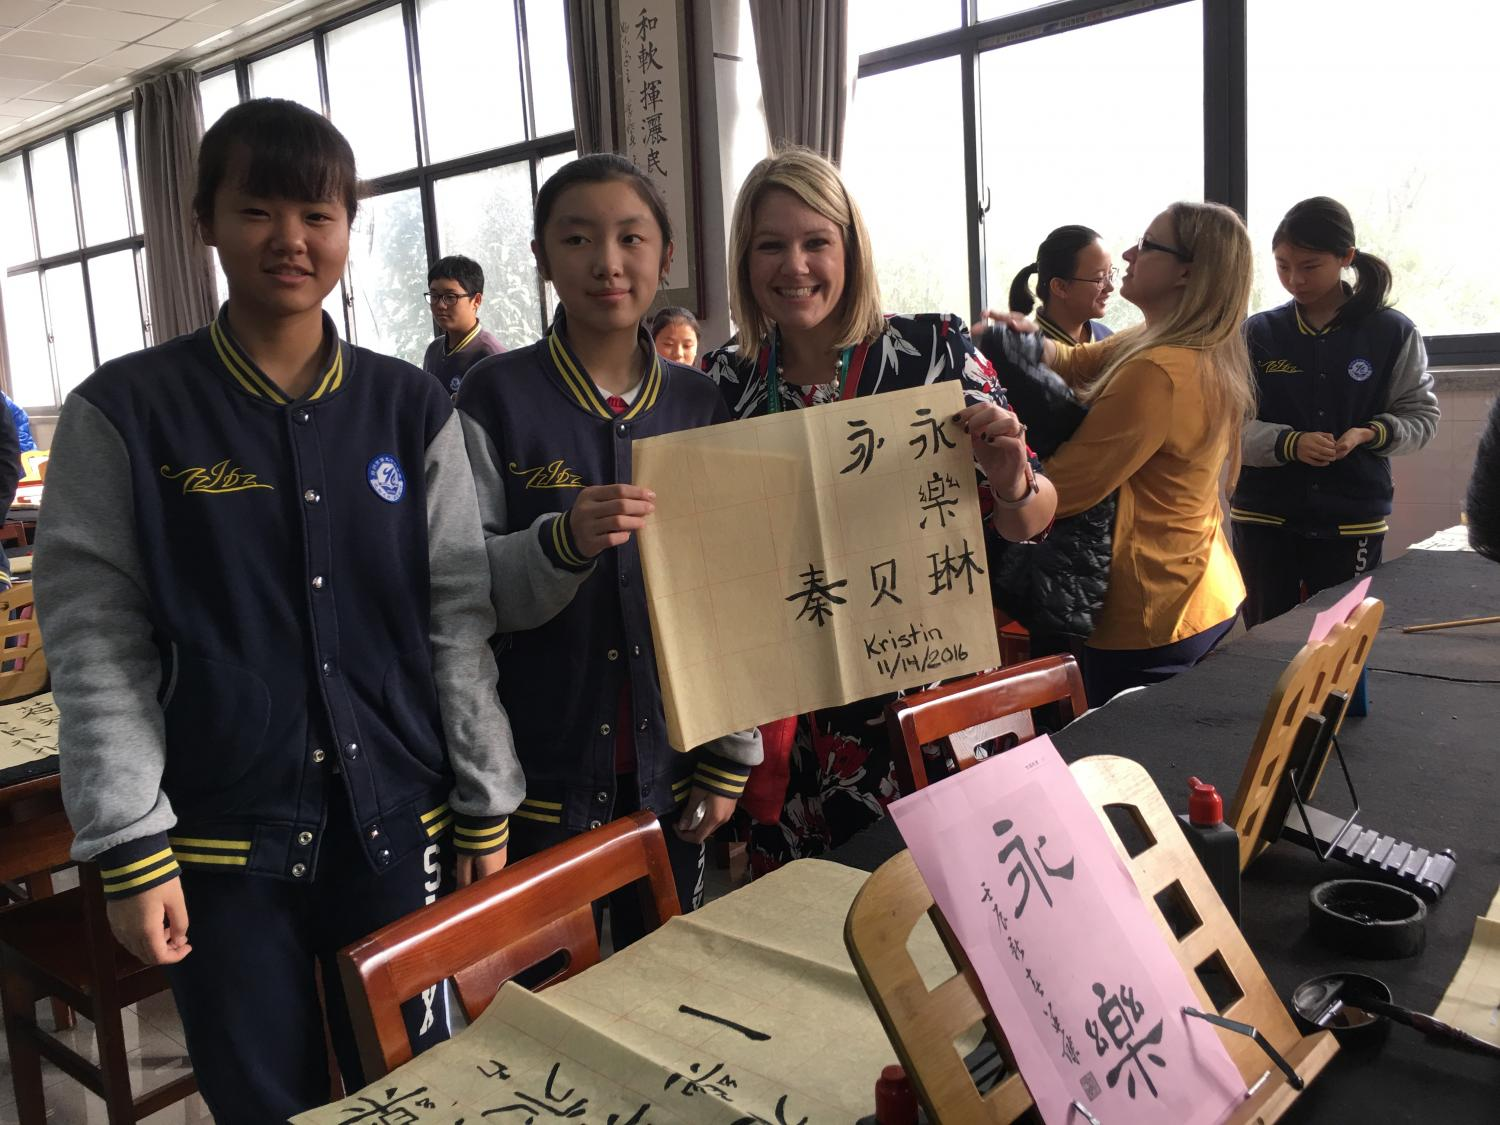 Kristin Kinghorn with students in China